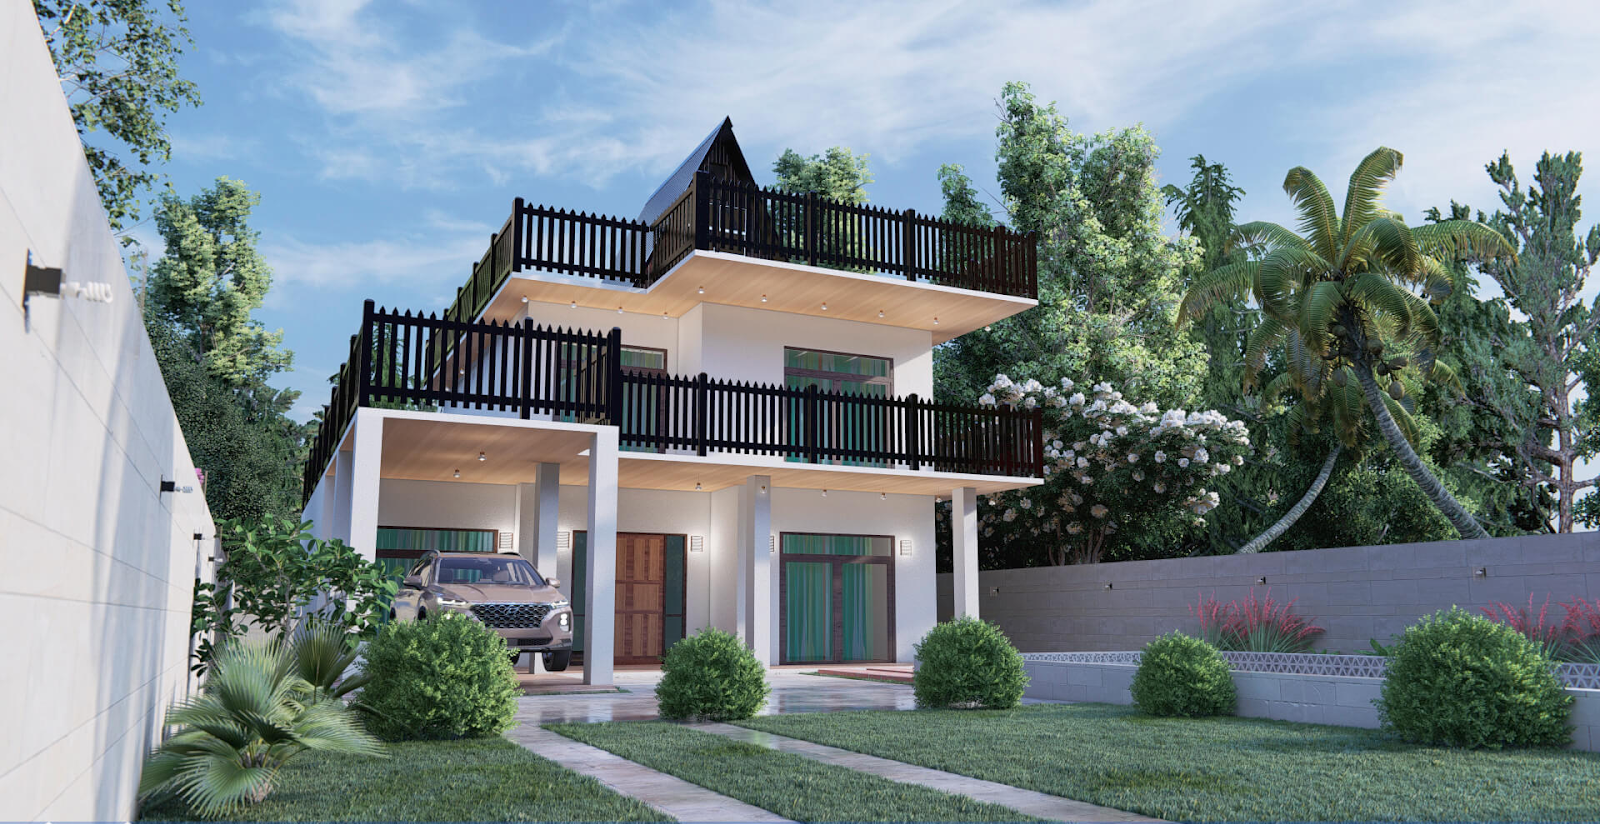 What-are-beautiful-exterior-rendering-ideas-19